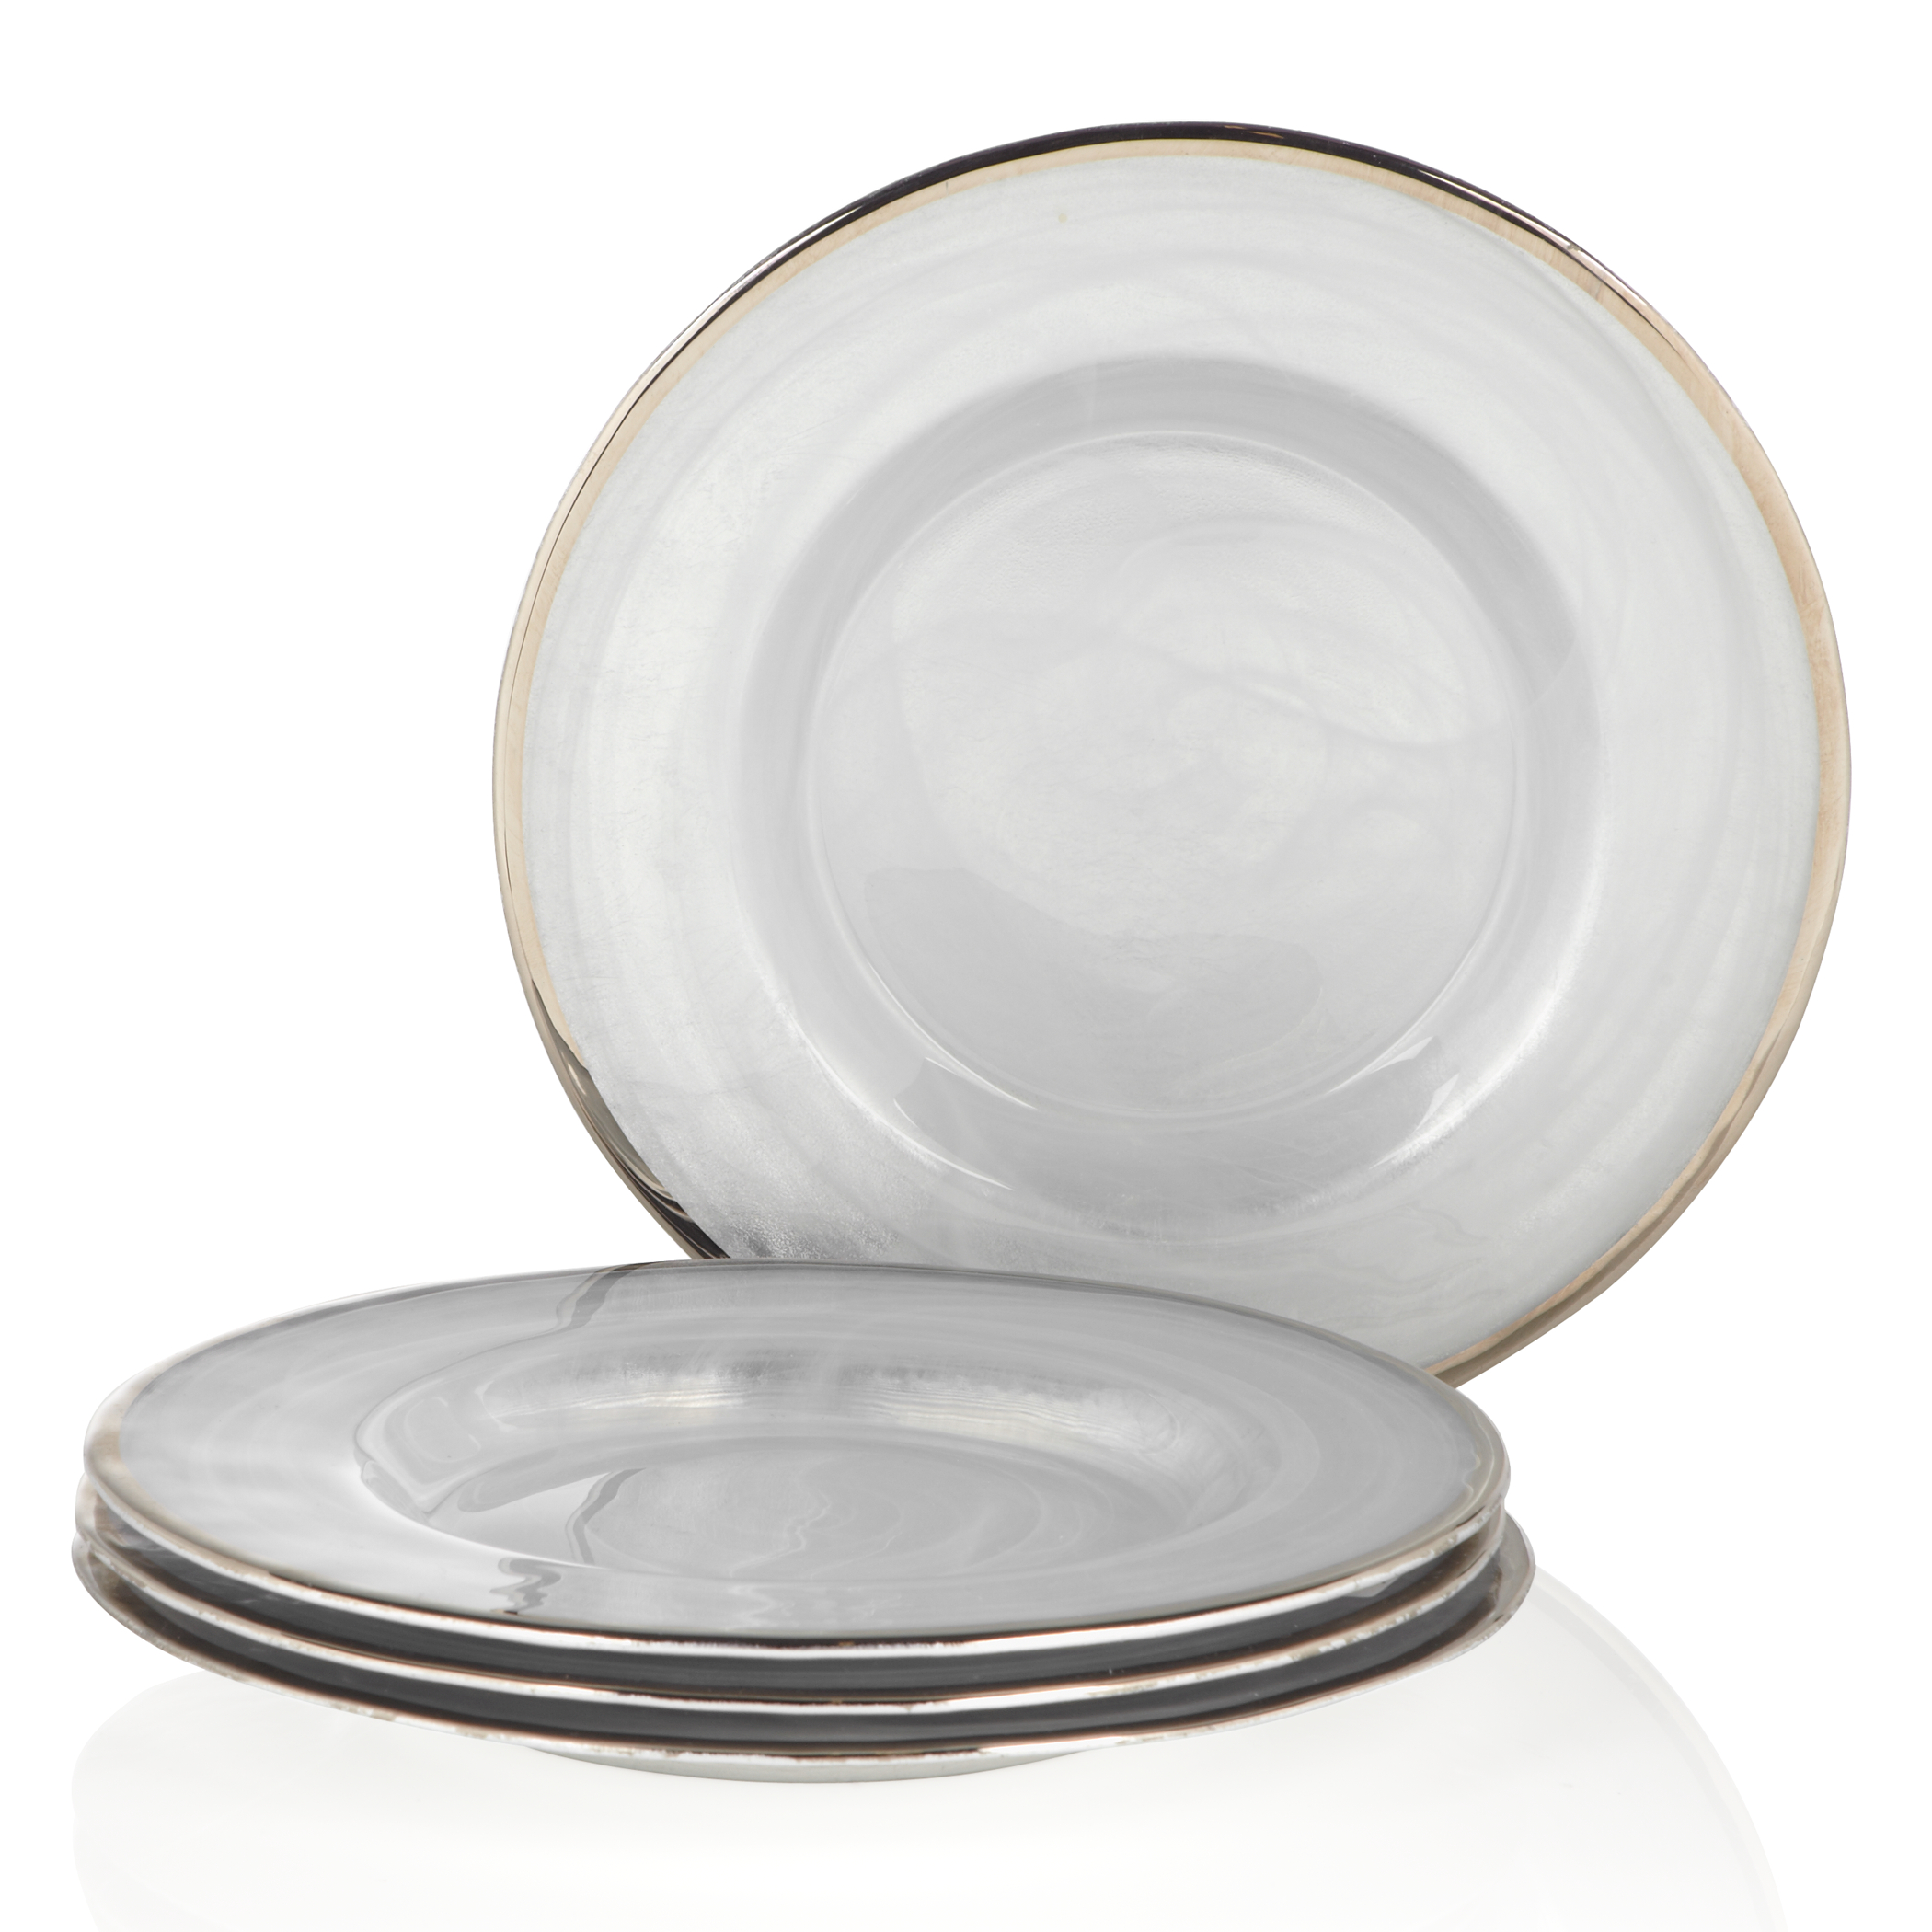 salad plate - set of 4